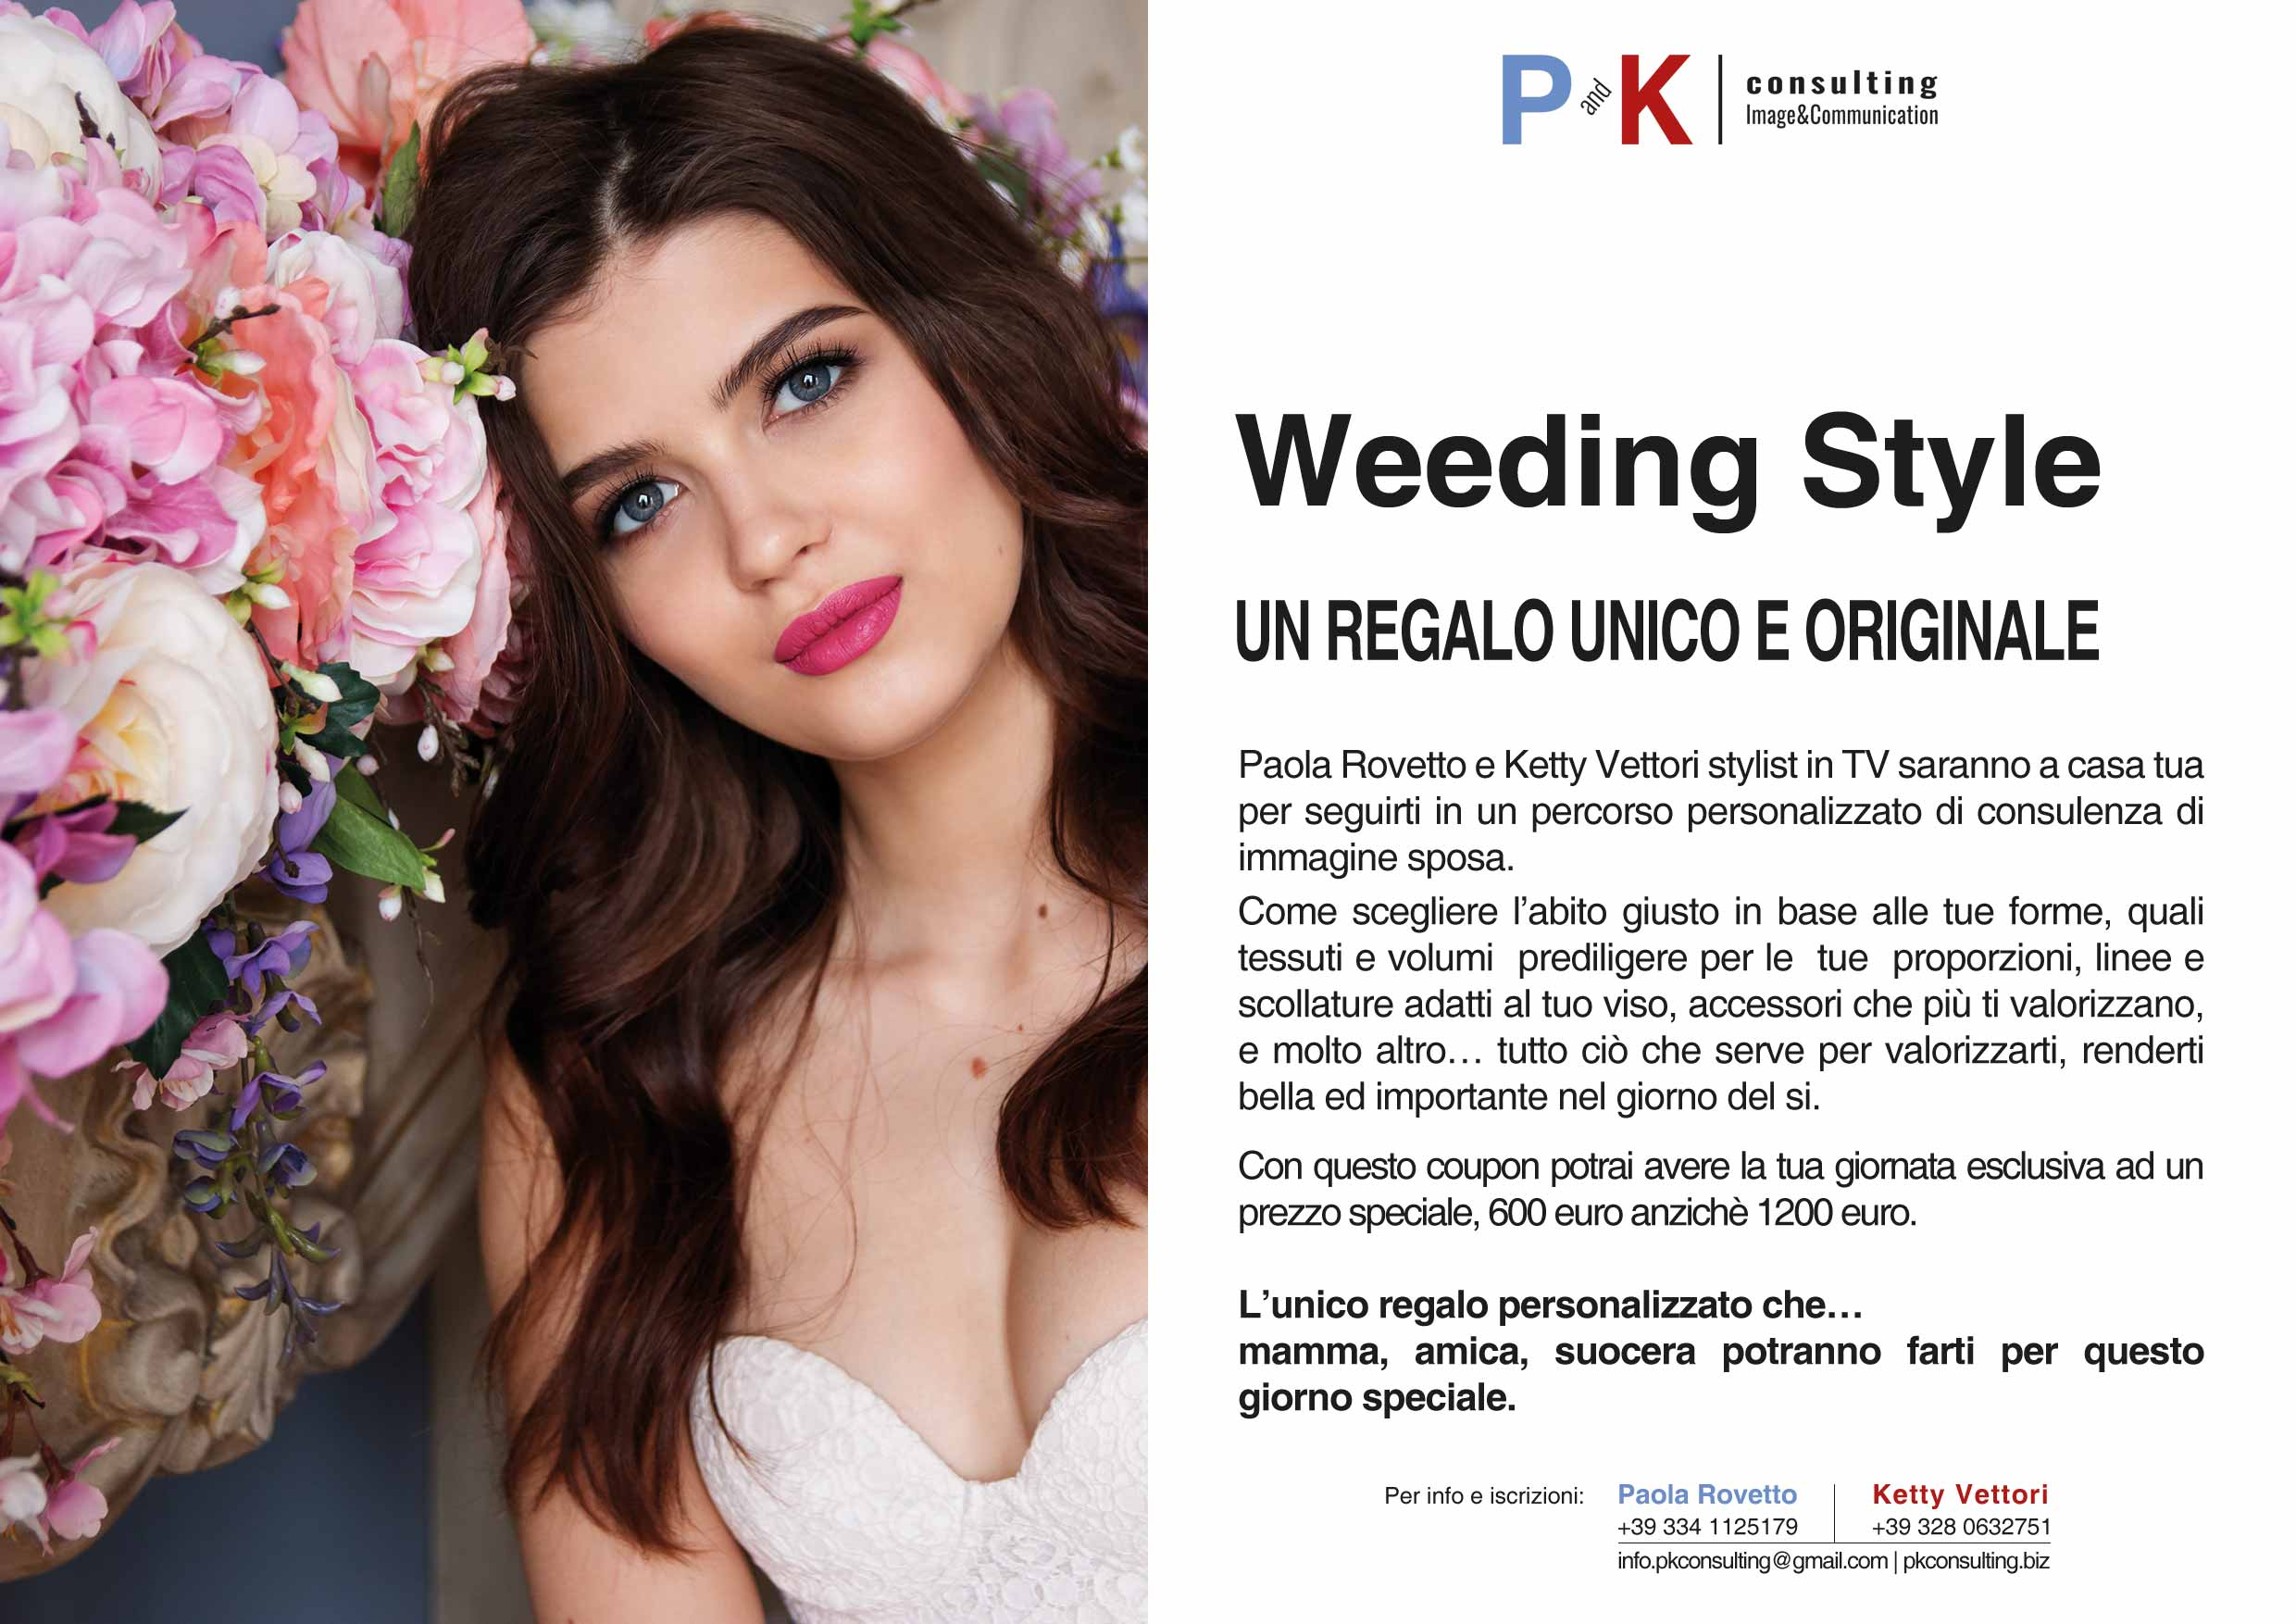 P&K Consulting Weeding Style